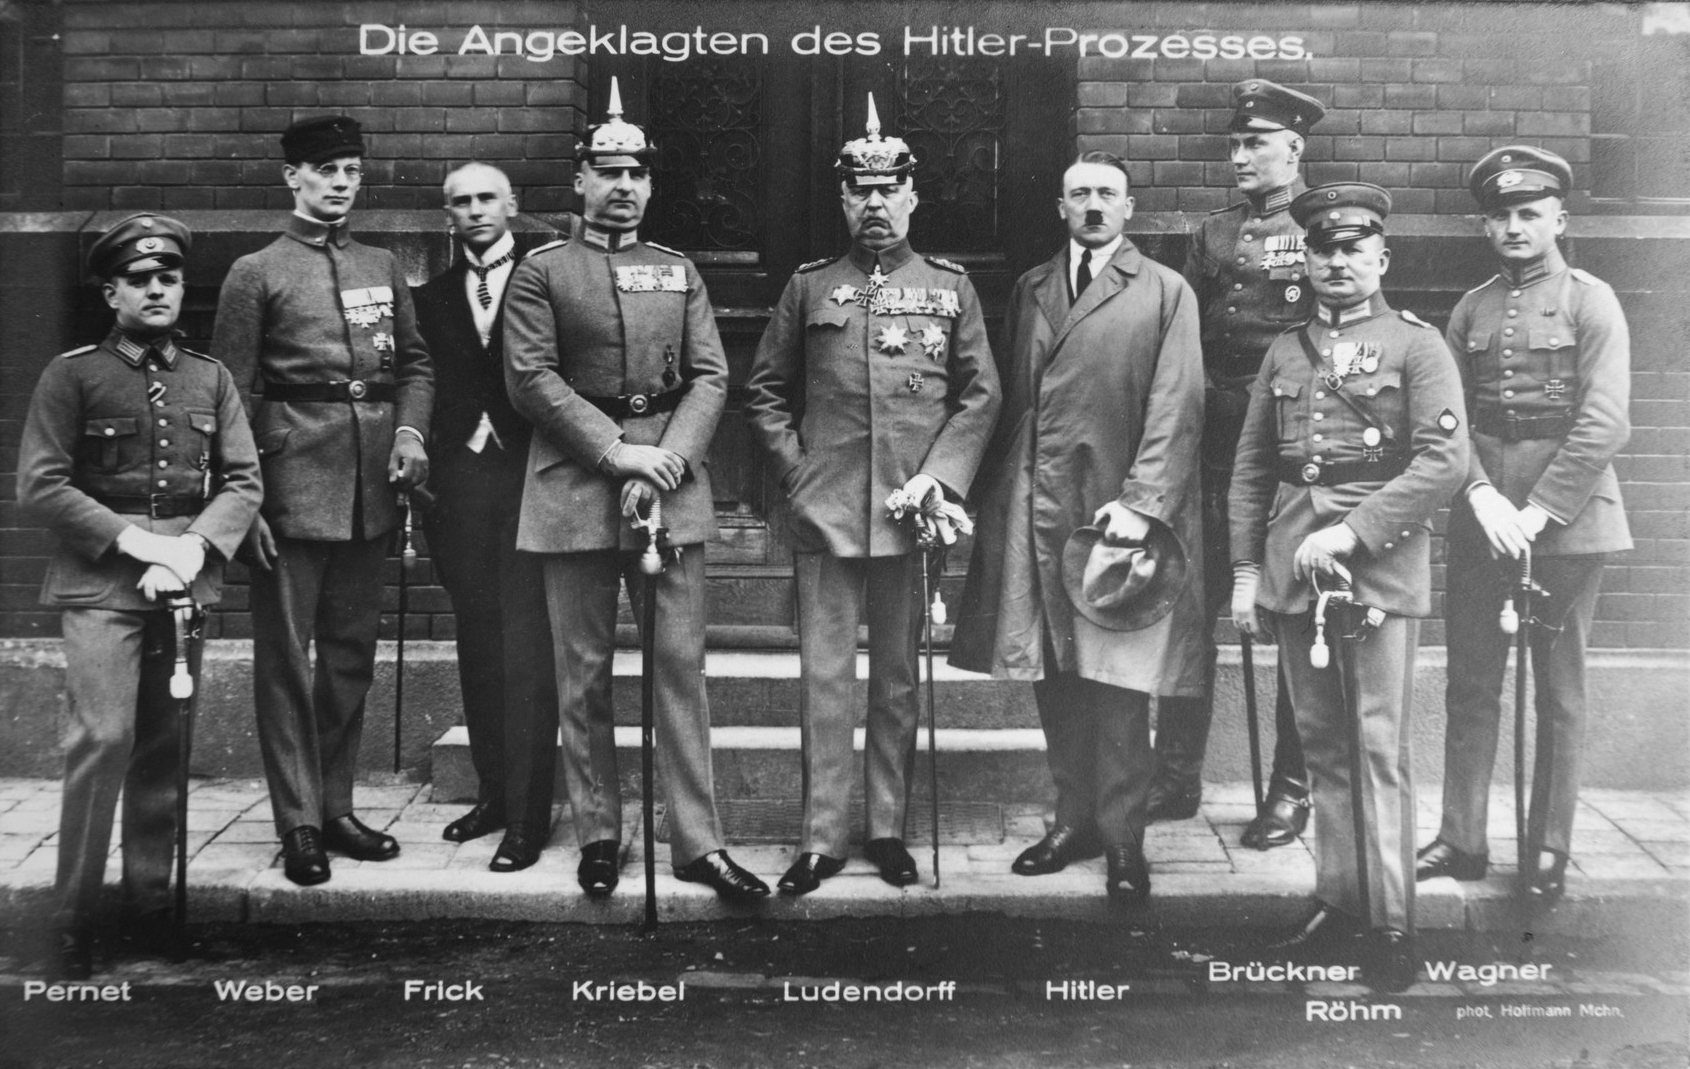 Hitler, Ludendorff, and other defendants pose during their trial after the failed putsch in Munich